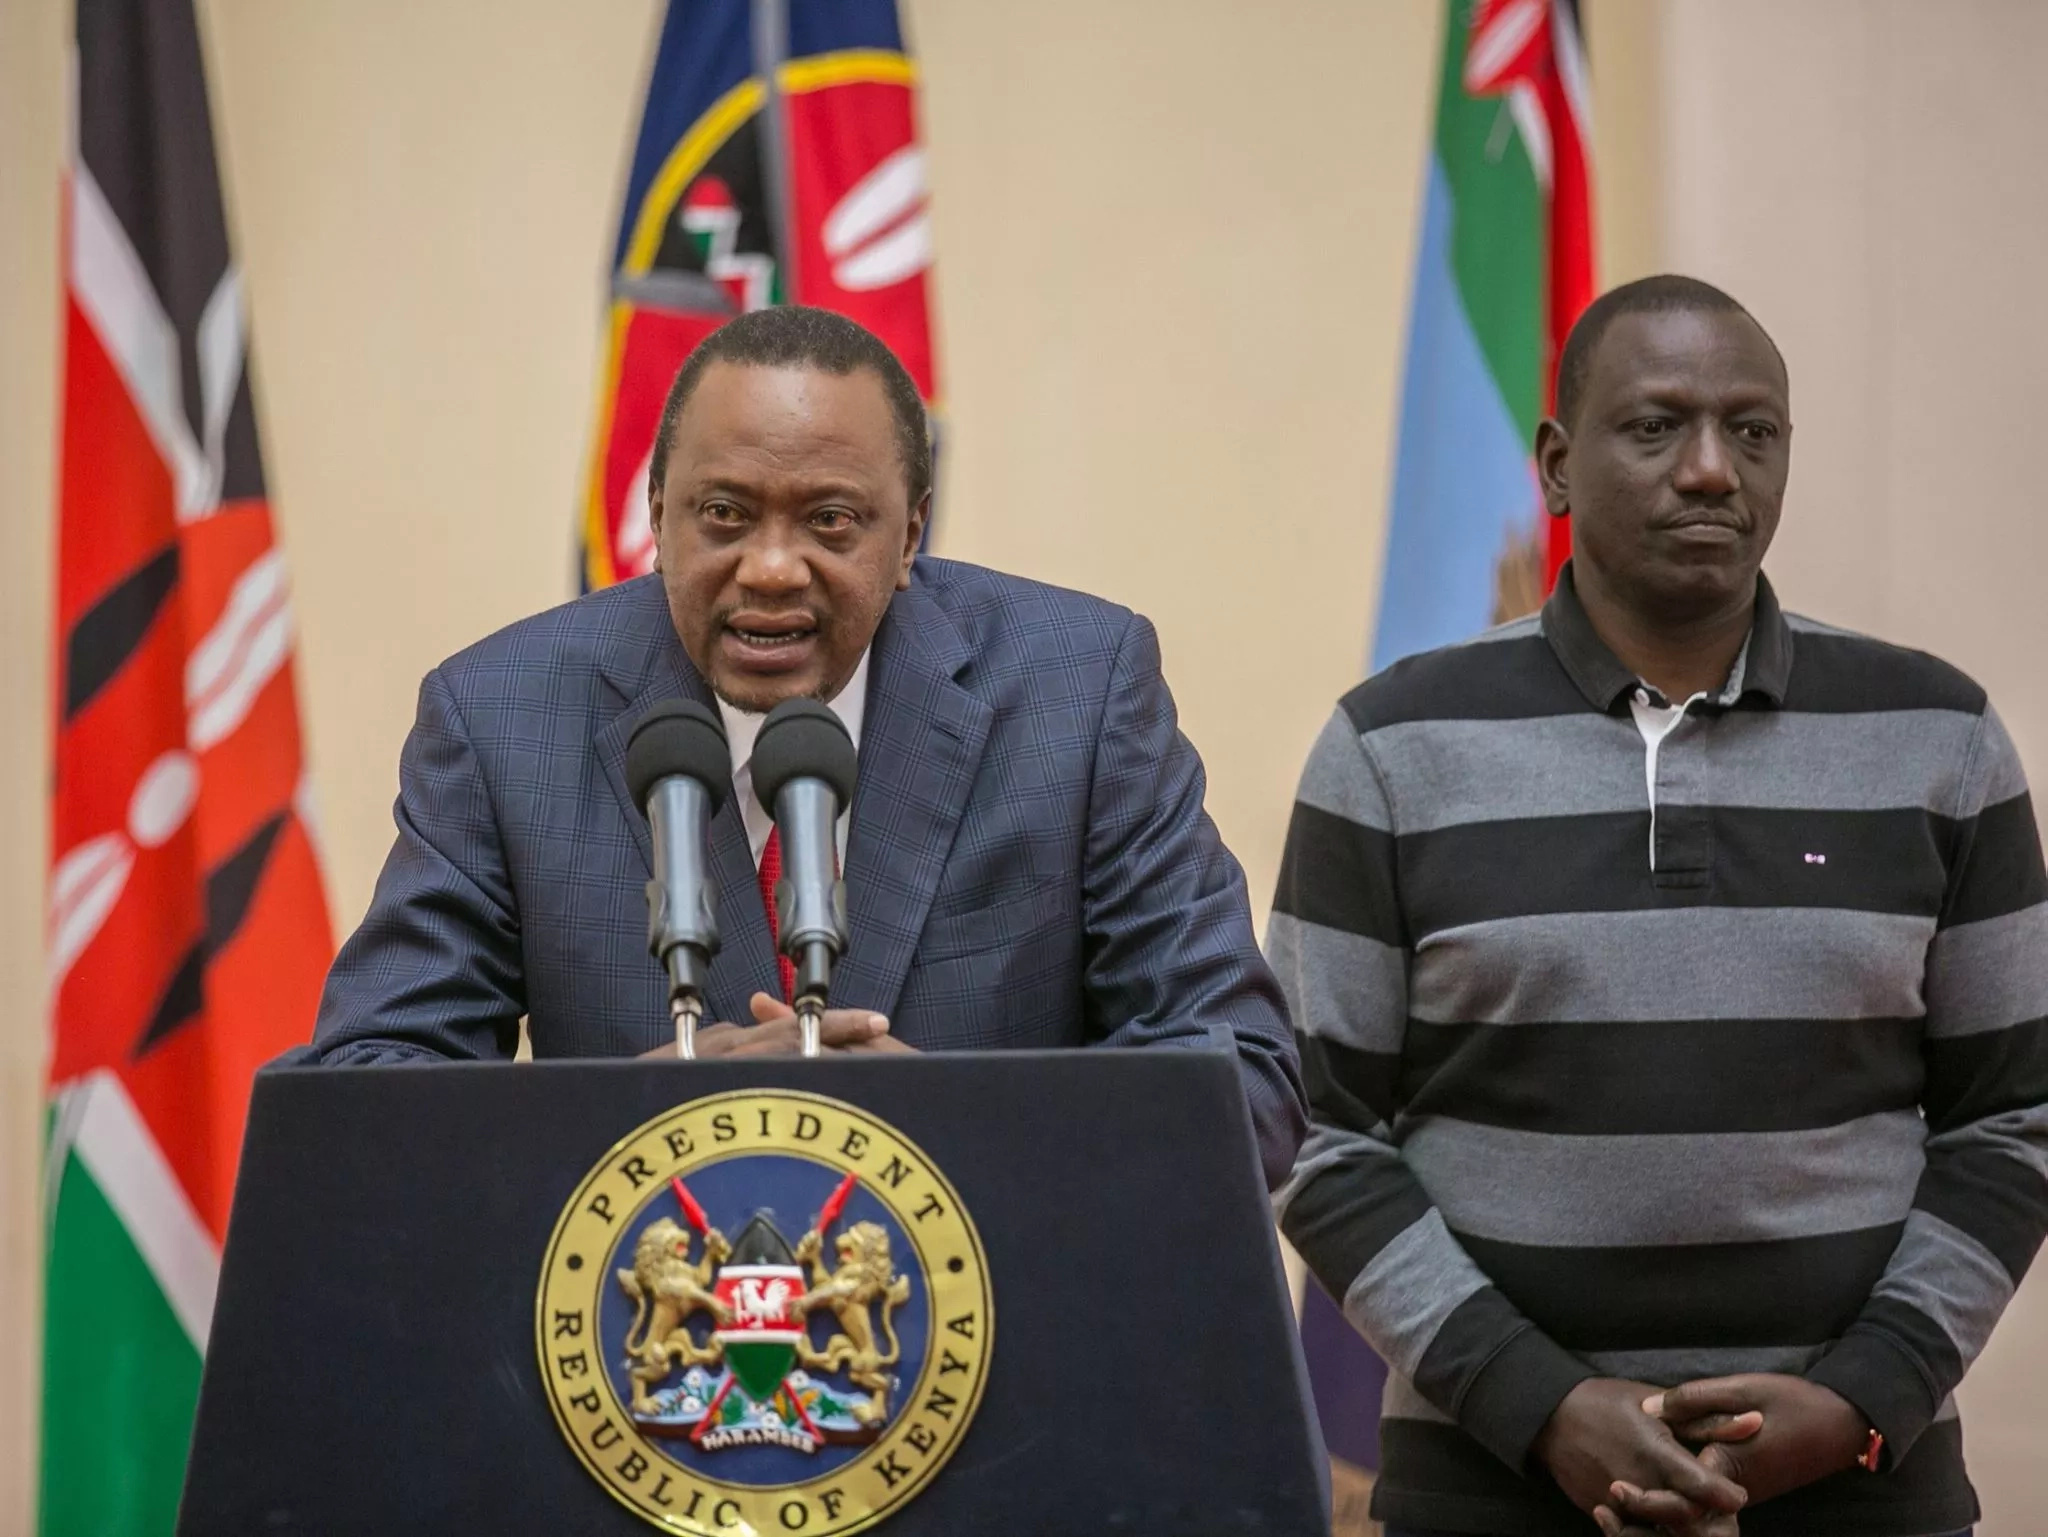 Kenya's Supreme Court rules presidential election invalid, new polls to be held